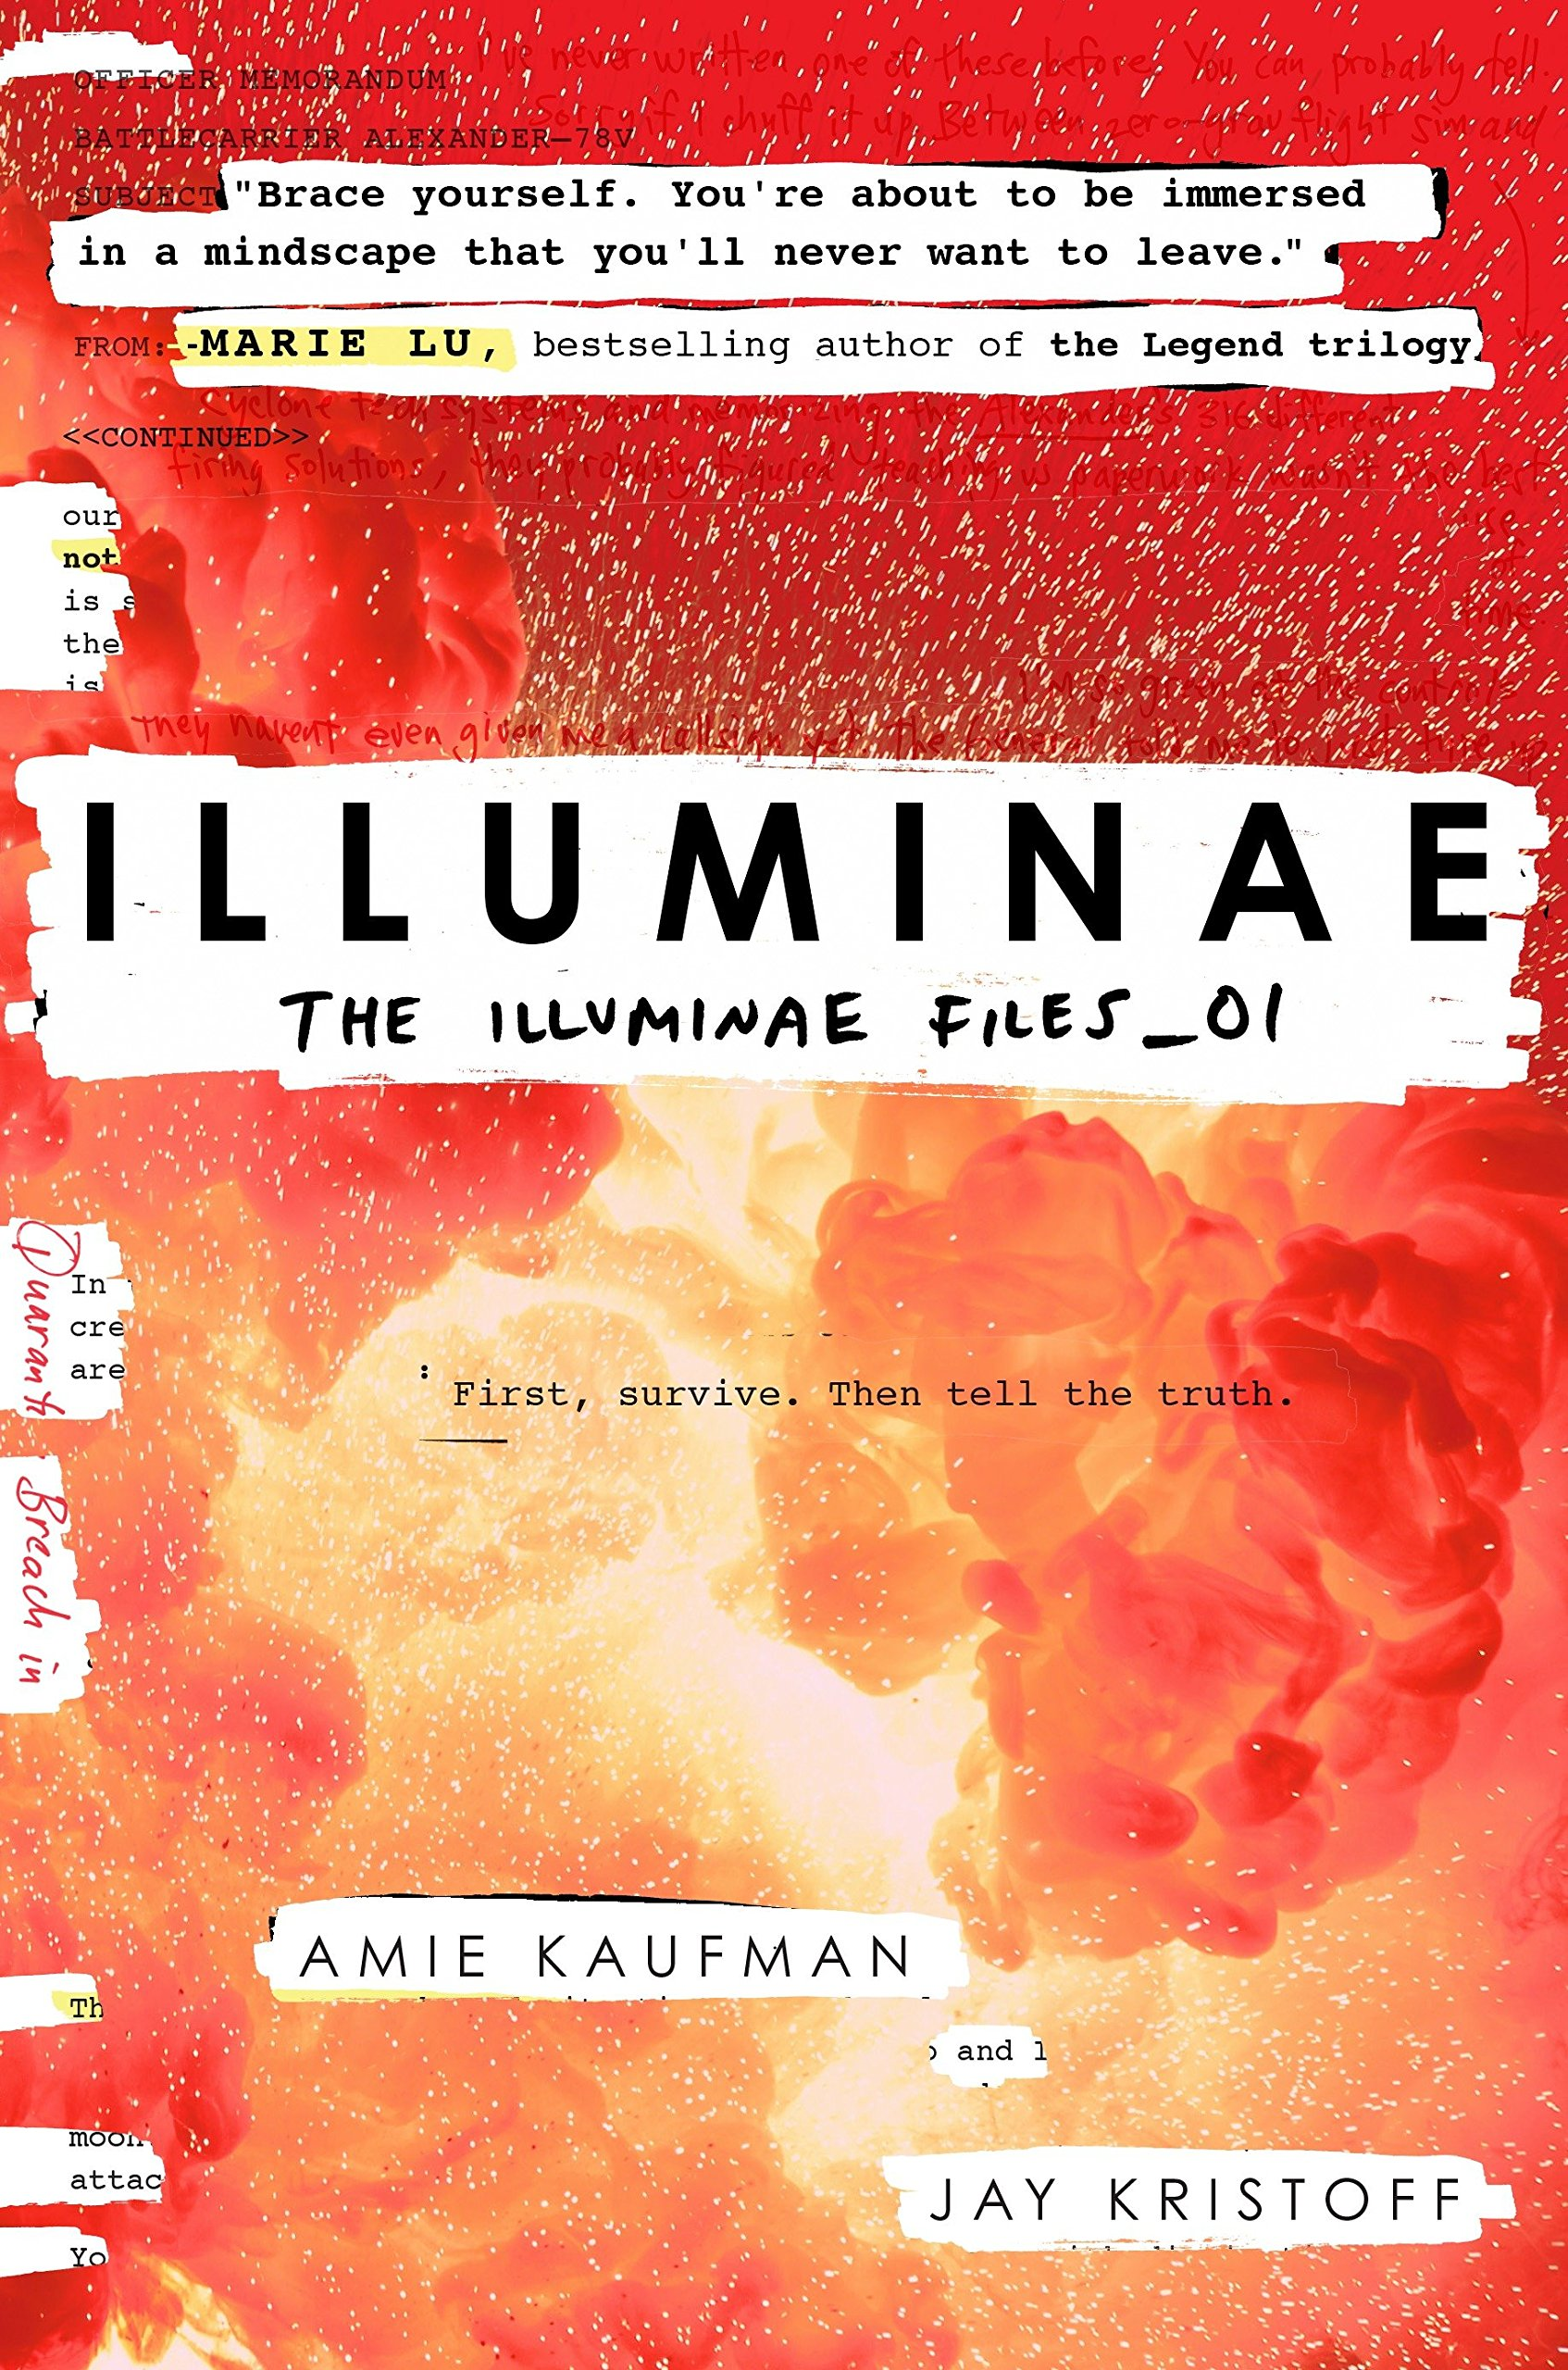 Image result for illuminae book cover